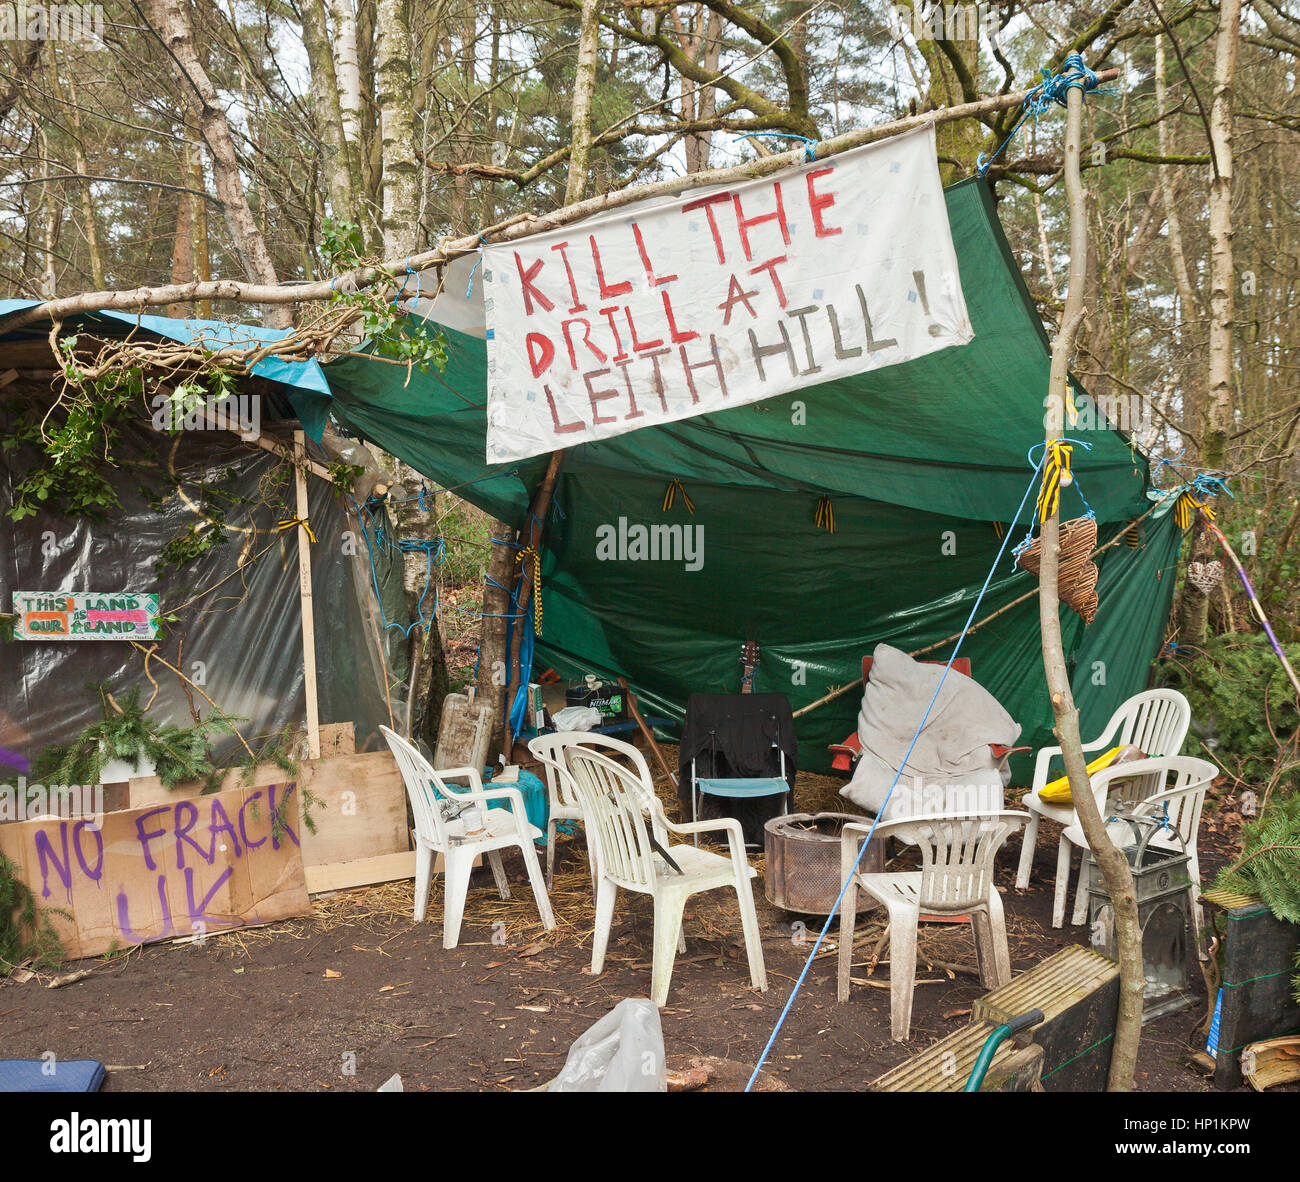 Coldharbour Lane, Abinger Forest, near Leith Hill, Surrey, UK. 17th Feb, 2017. Anti fracking protesters roadside - Stock Image